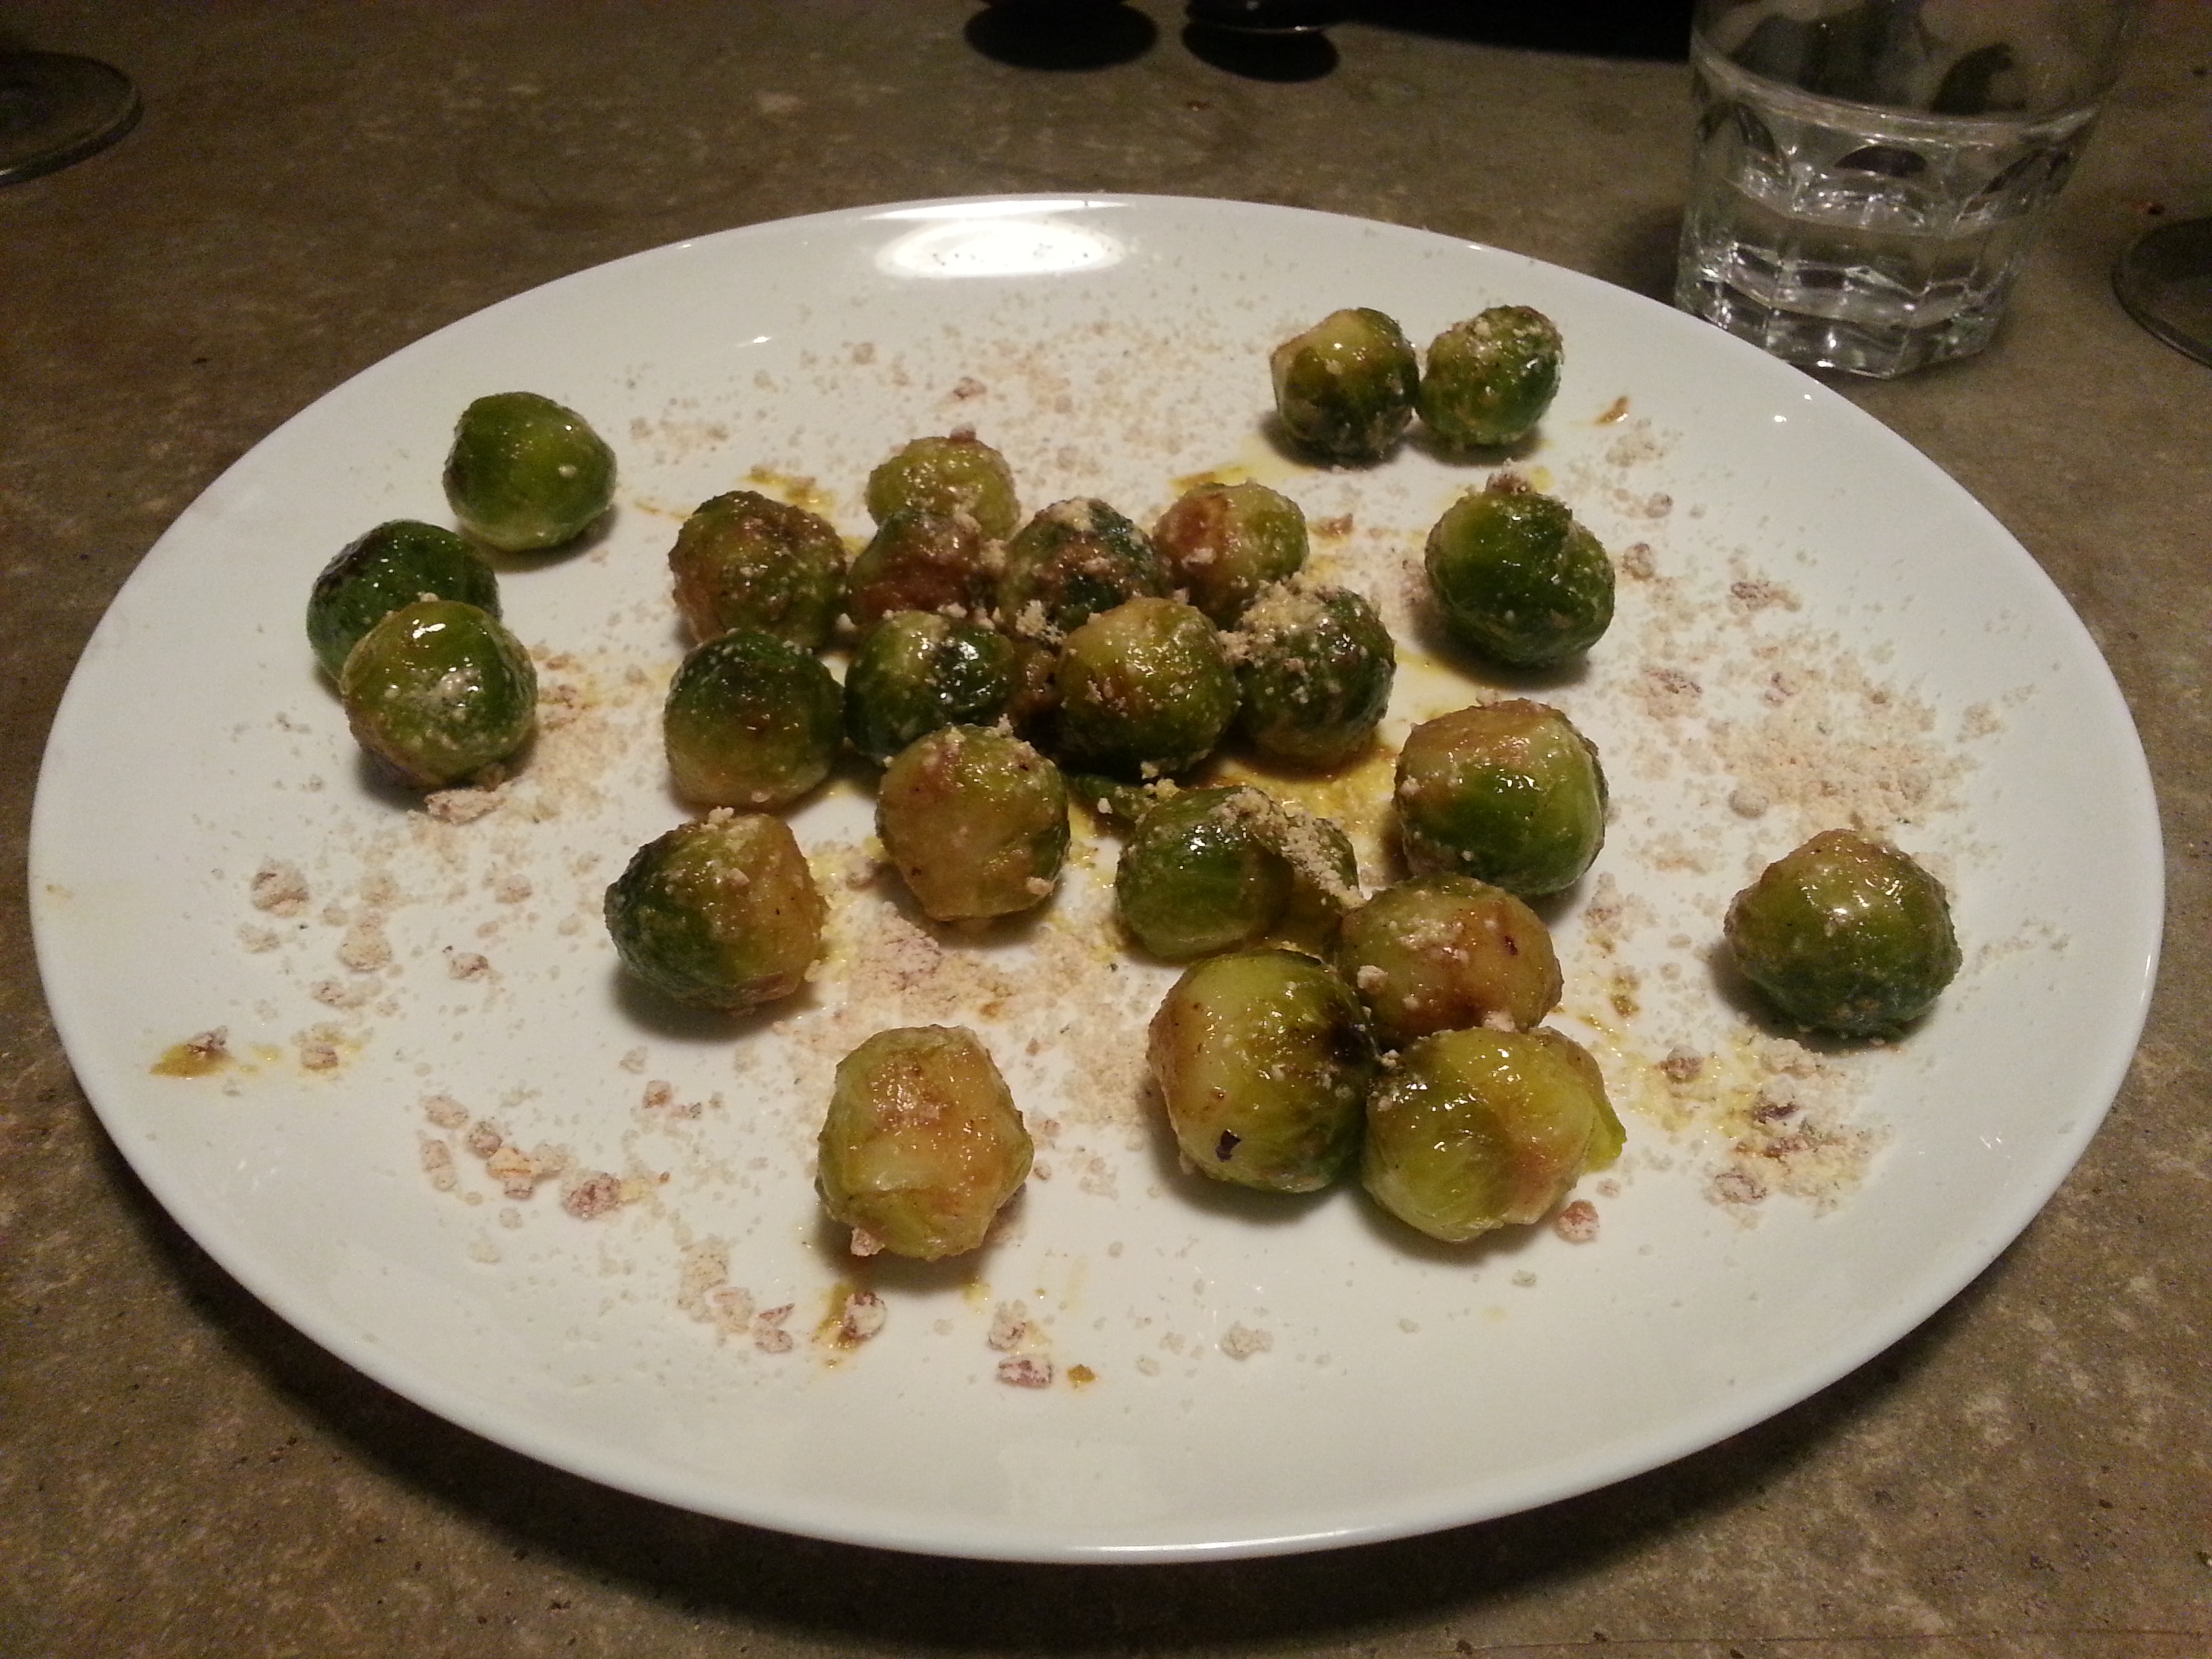 Dertien and Yama - Brussels sprouts, kimchi butter